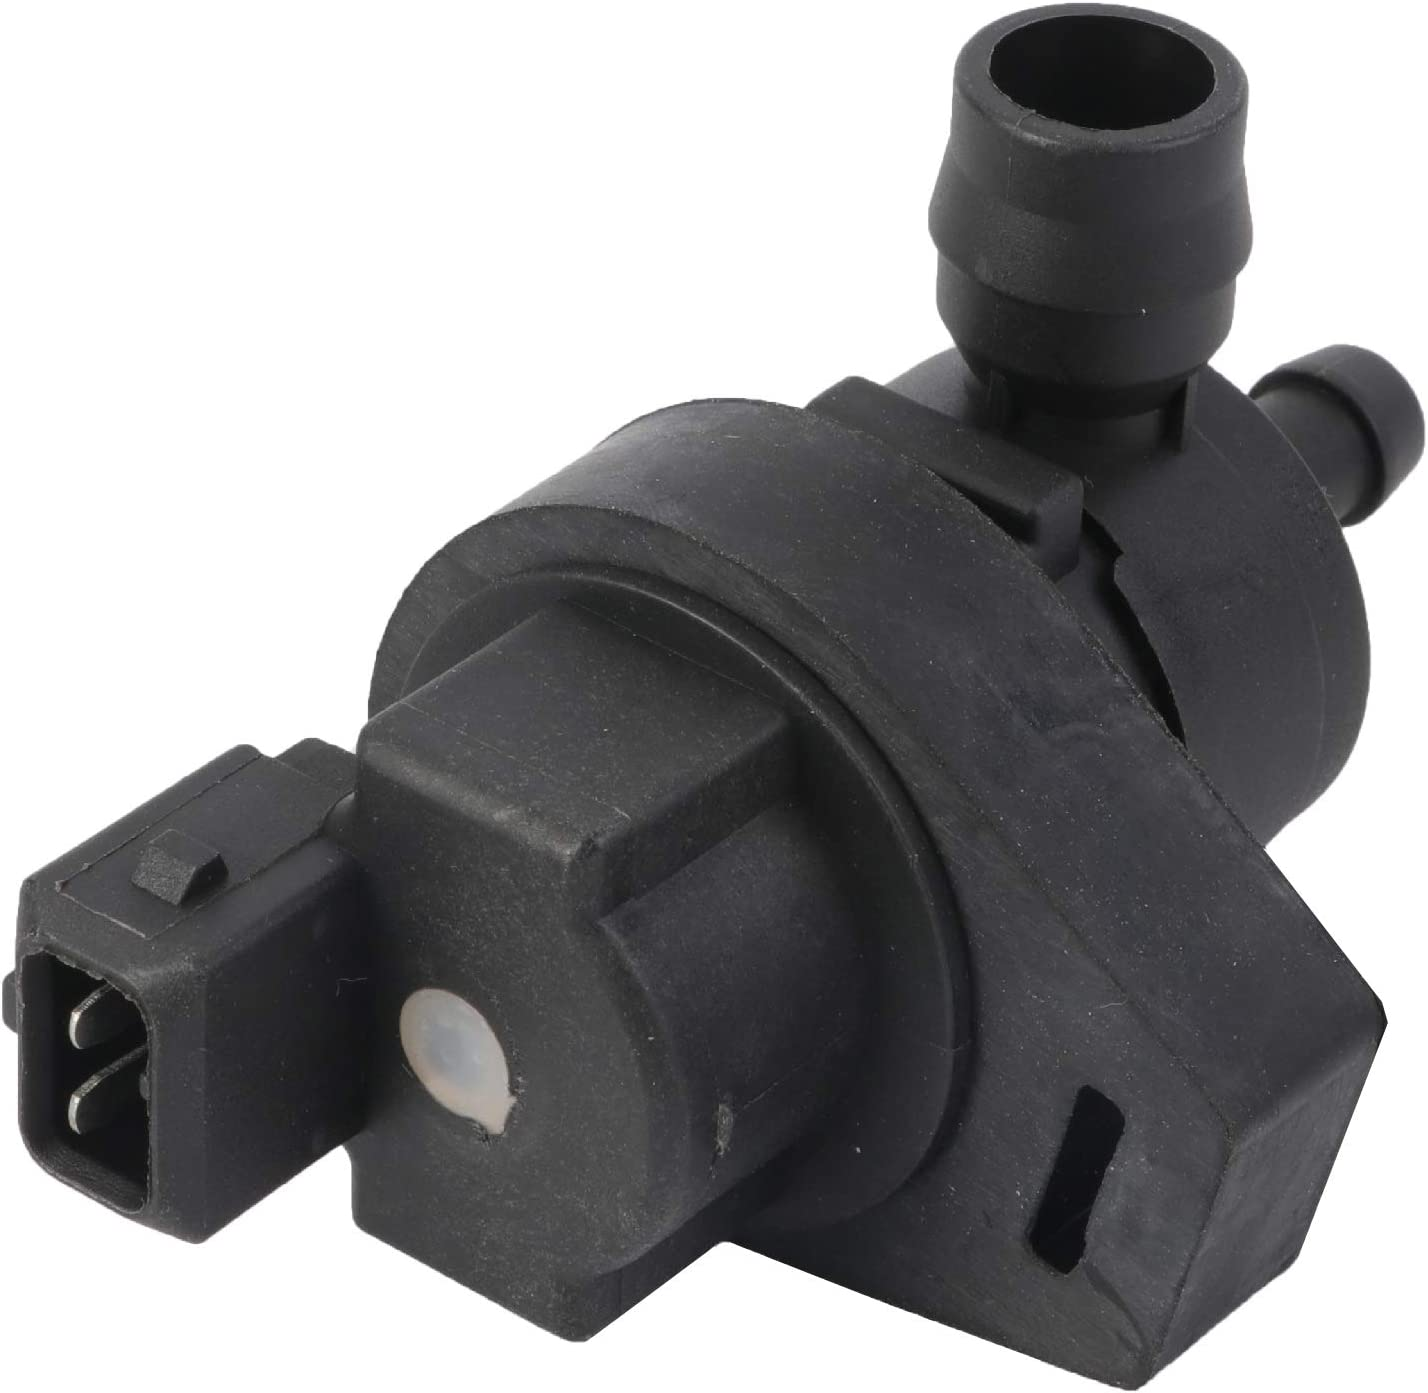 Duolctrams 13901433603 BMW Vapor Canister Purge Vent Valve Solenoid for BMW 325i 325xi 330Ci 330i 330xi 530i 540i 740i 740iL 750iL X5 Z3 Z4 Replaces 13901433602 CP474 PV798 2502-487840 2282587